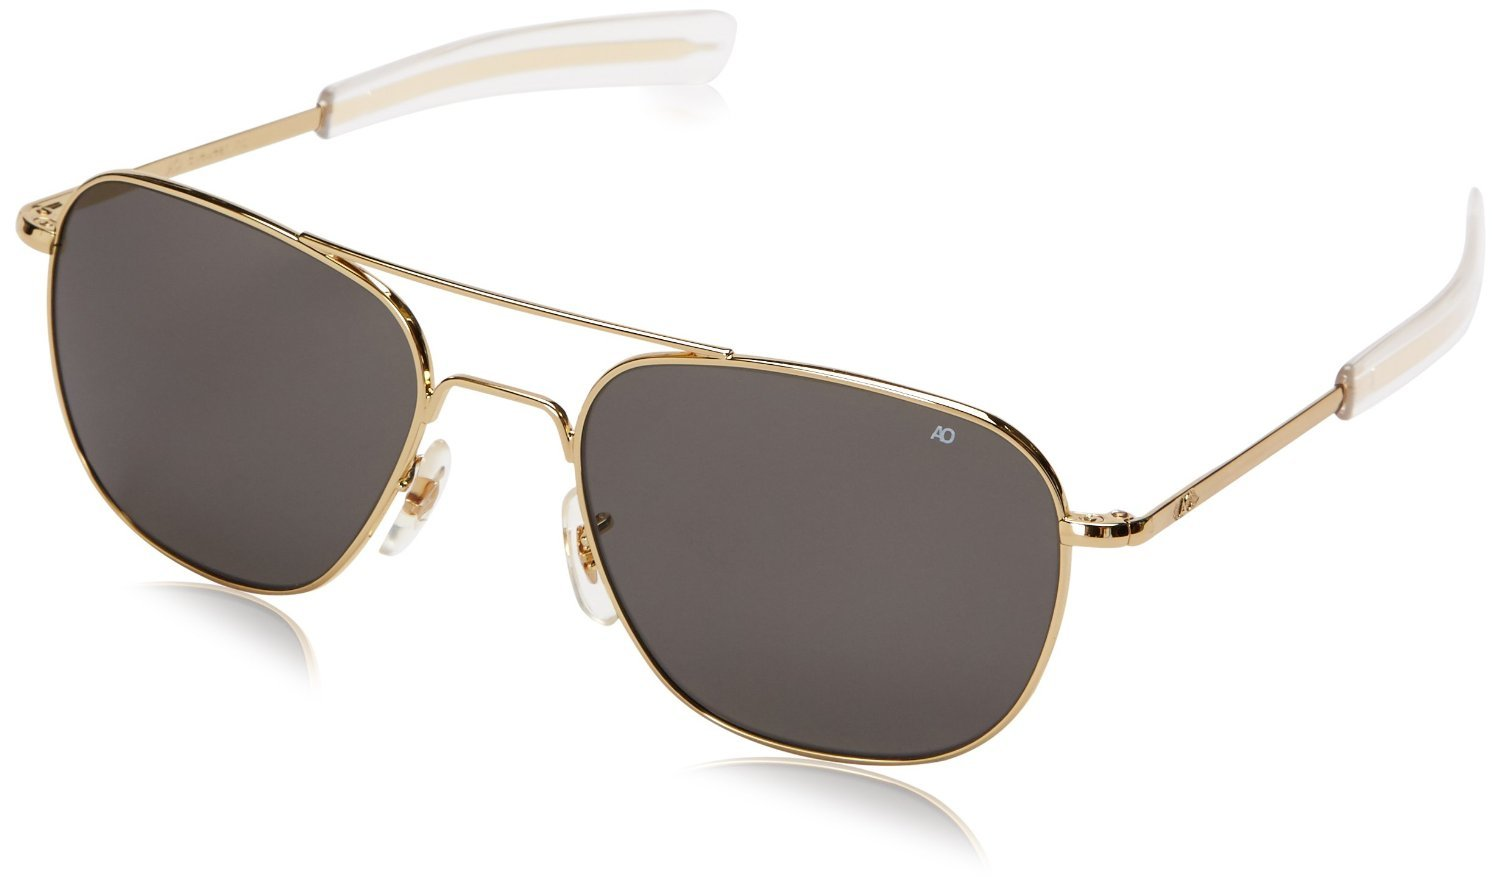 original aviators  Amazon.com: AO Eyewear Original Pilot 55mm Gold Frame with Bayonet ...